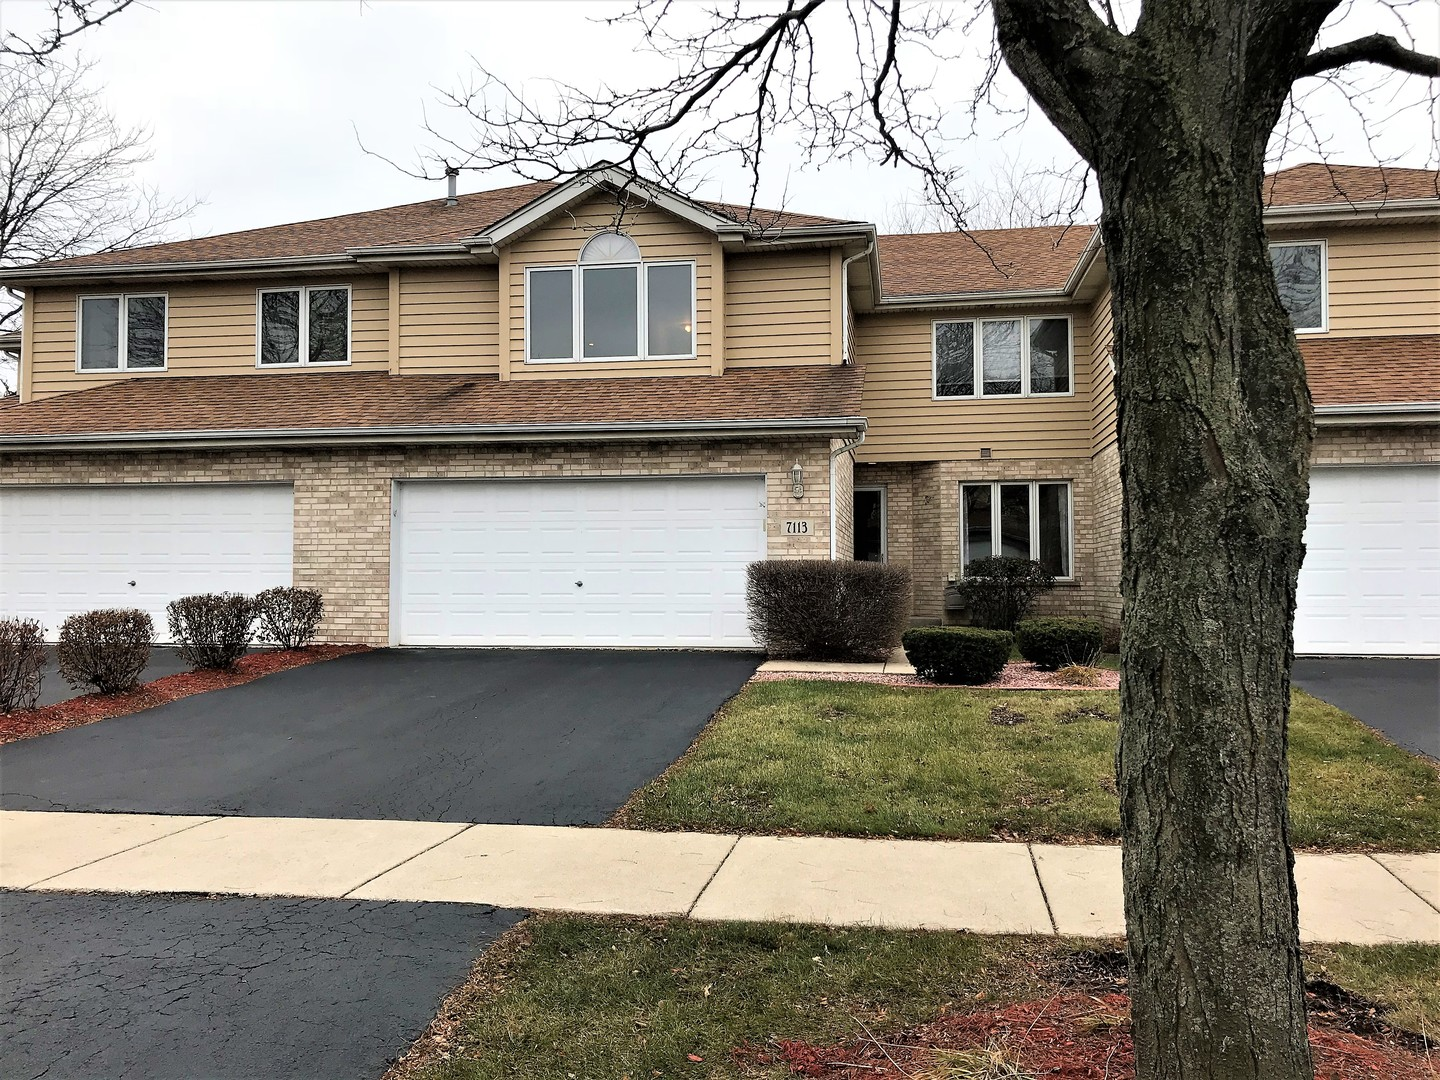 7113 182nd Street, one of homes for sale in Tinley Park